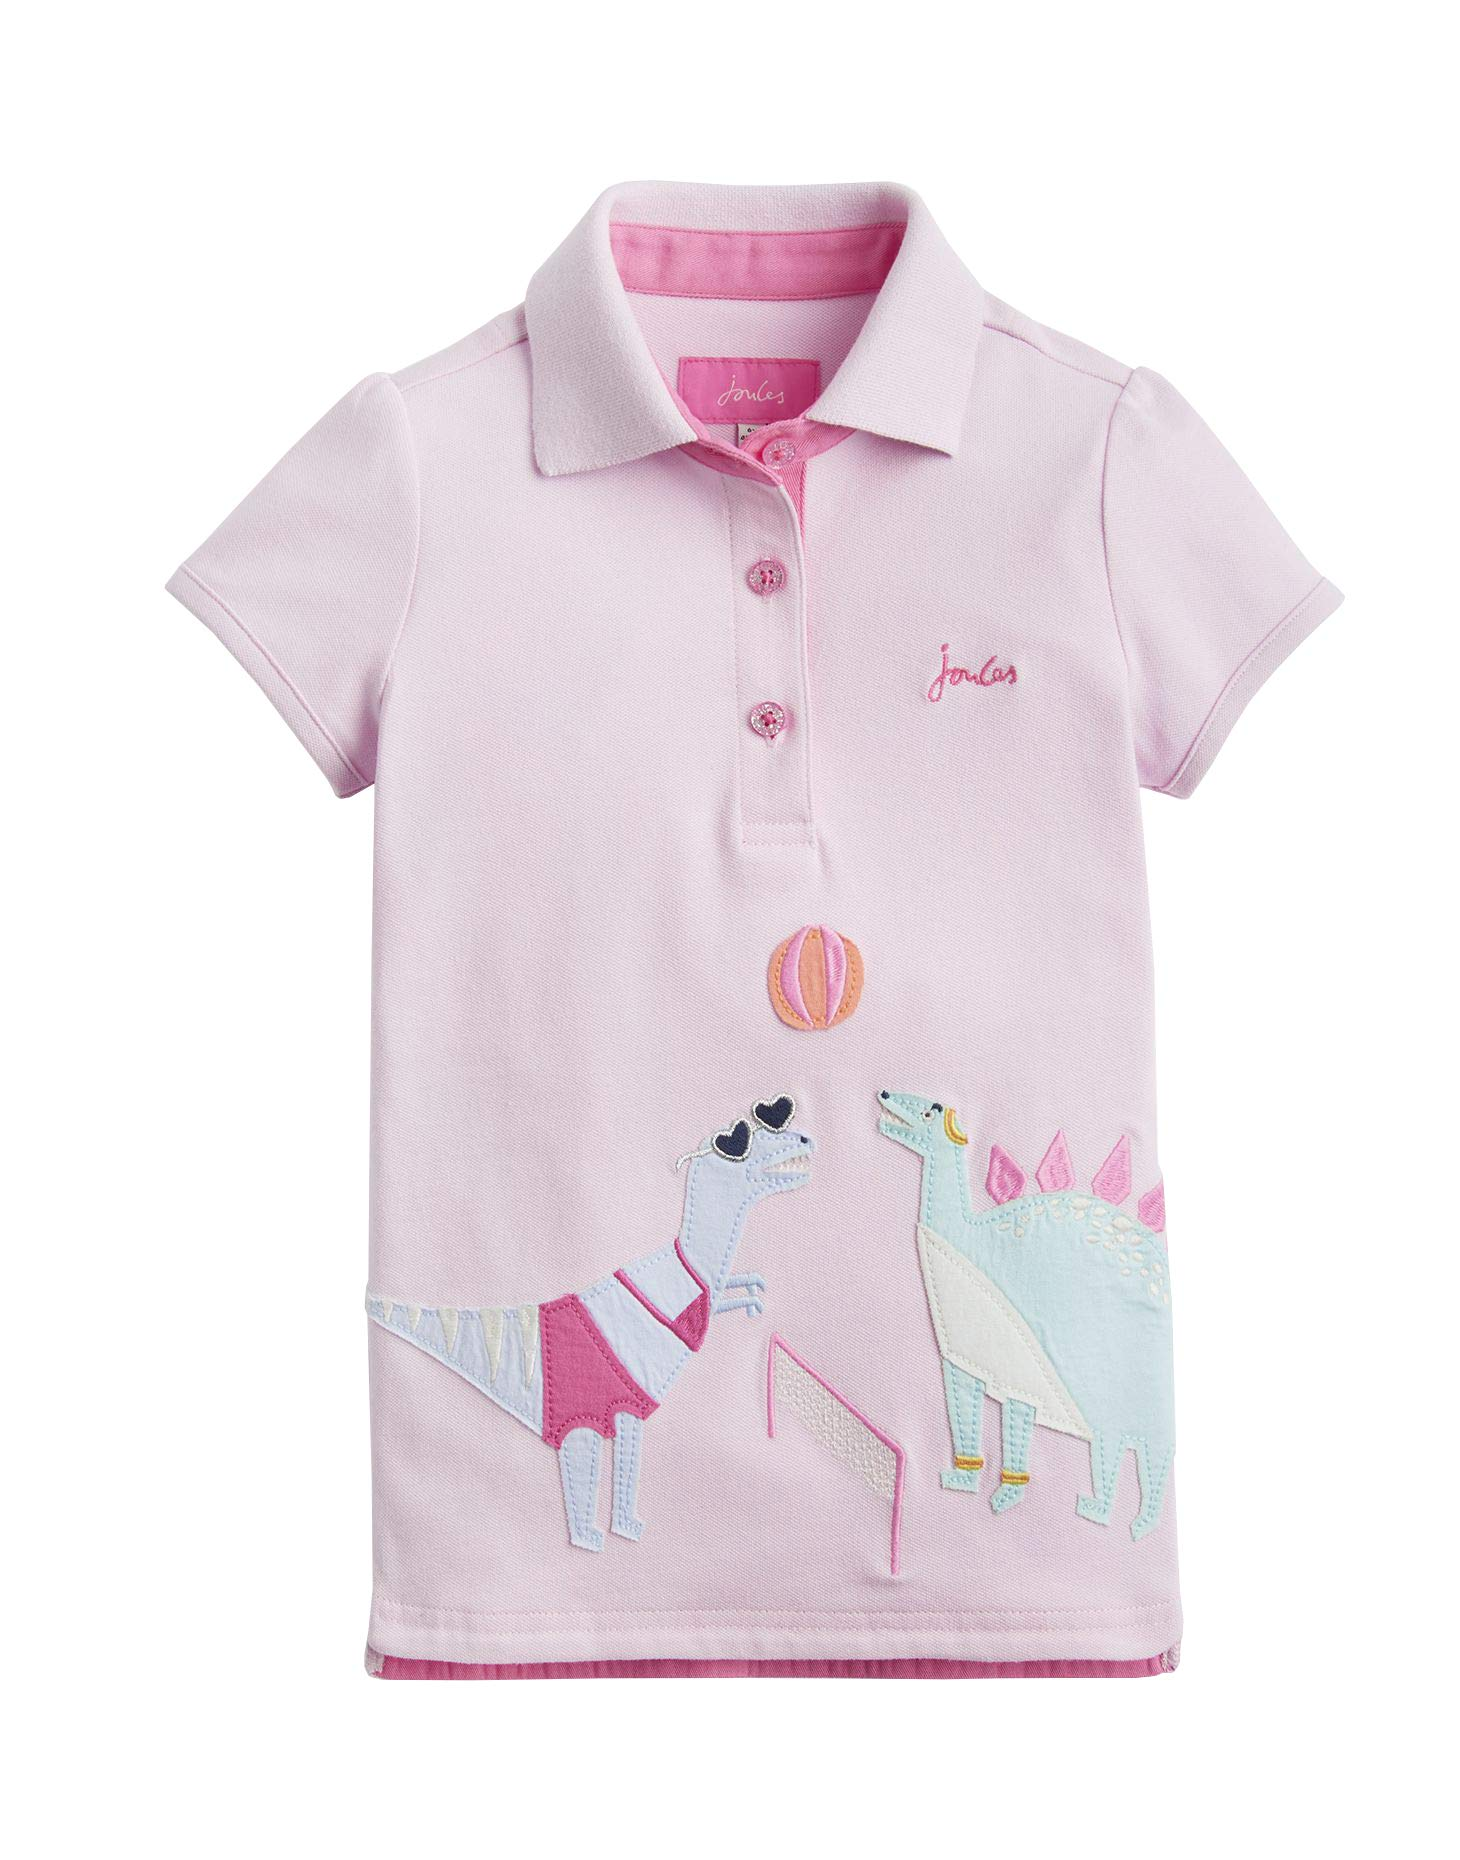 Joules Moxie Applique Polo Shirt - Pink Dino Sport - 7-8 Years - 122-128 cm by Joules